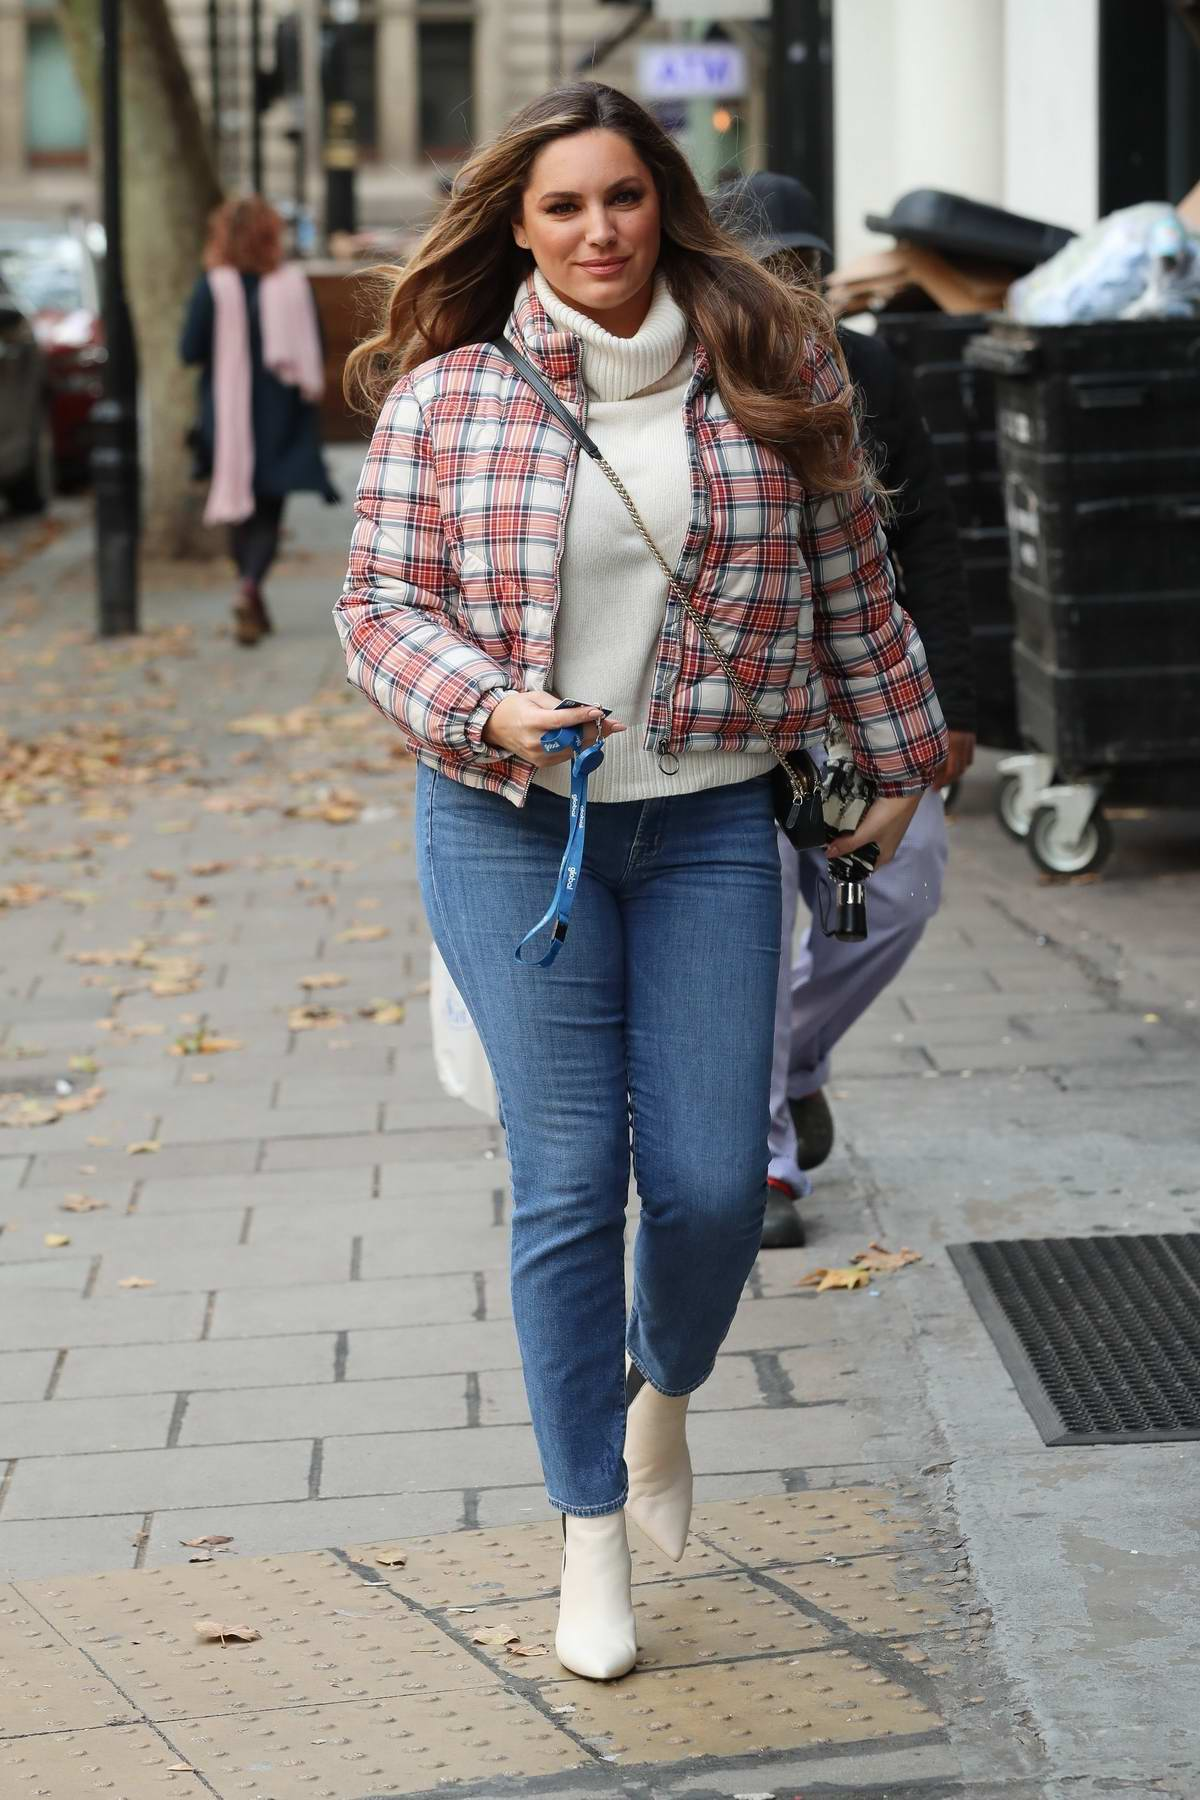 Kelly Brook wears a cream turtleneck sweater with plaid jacket as she arrives at Global Radio Studios in London, UK